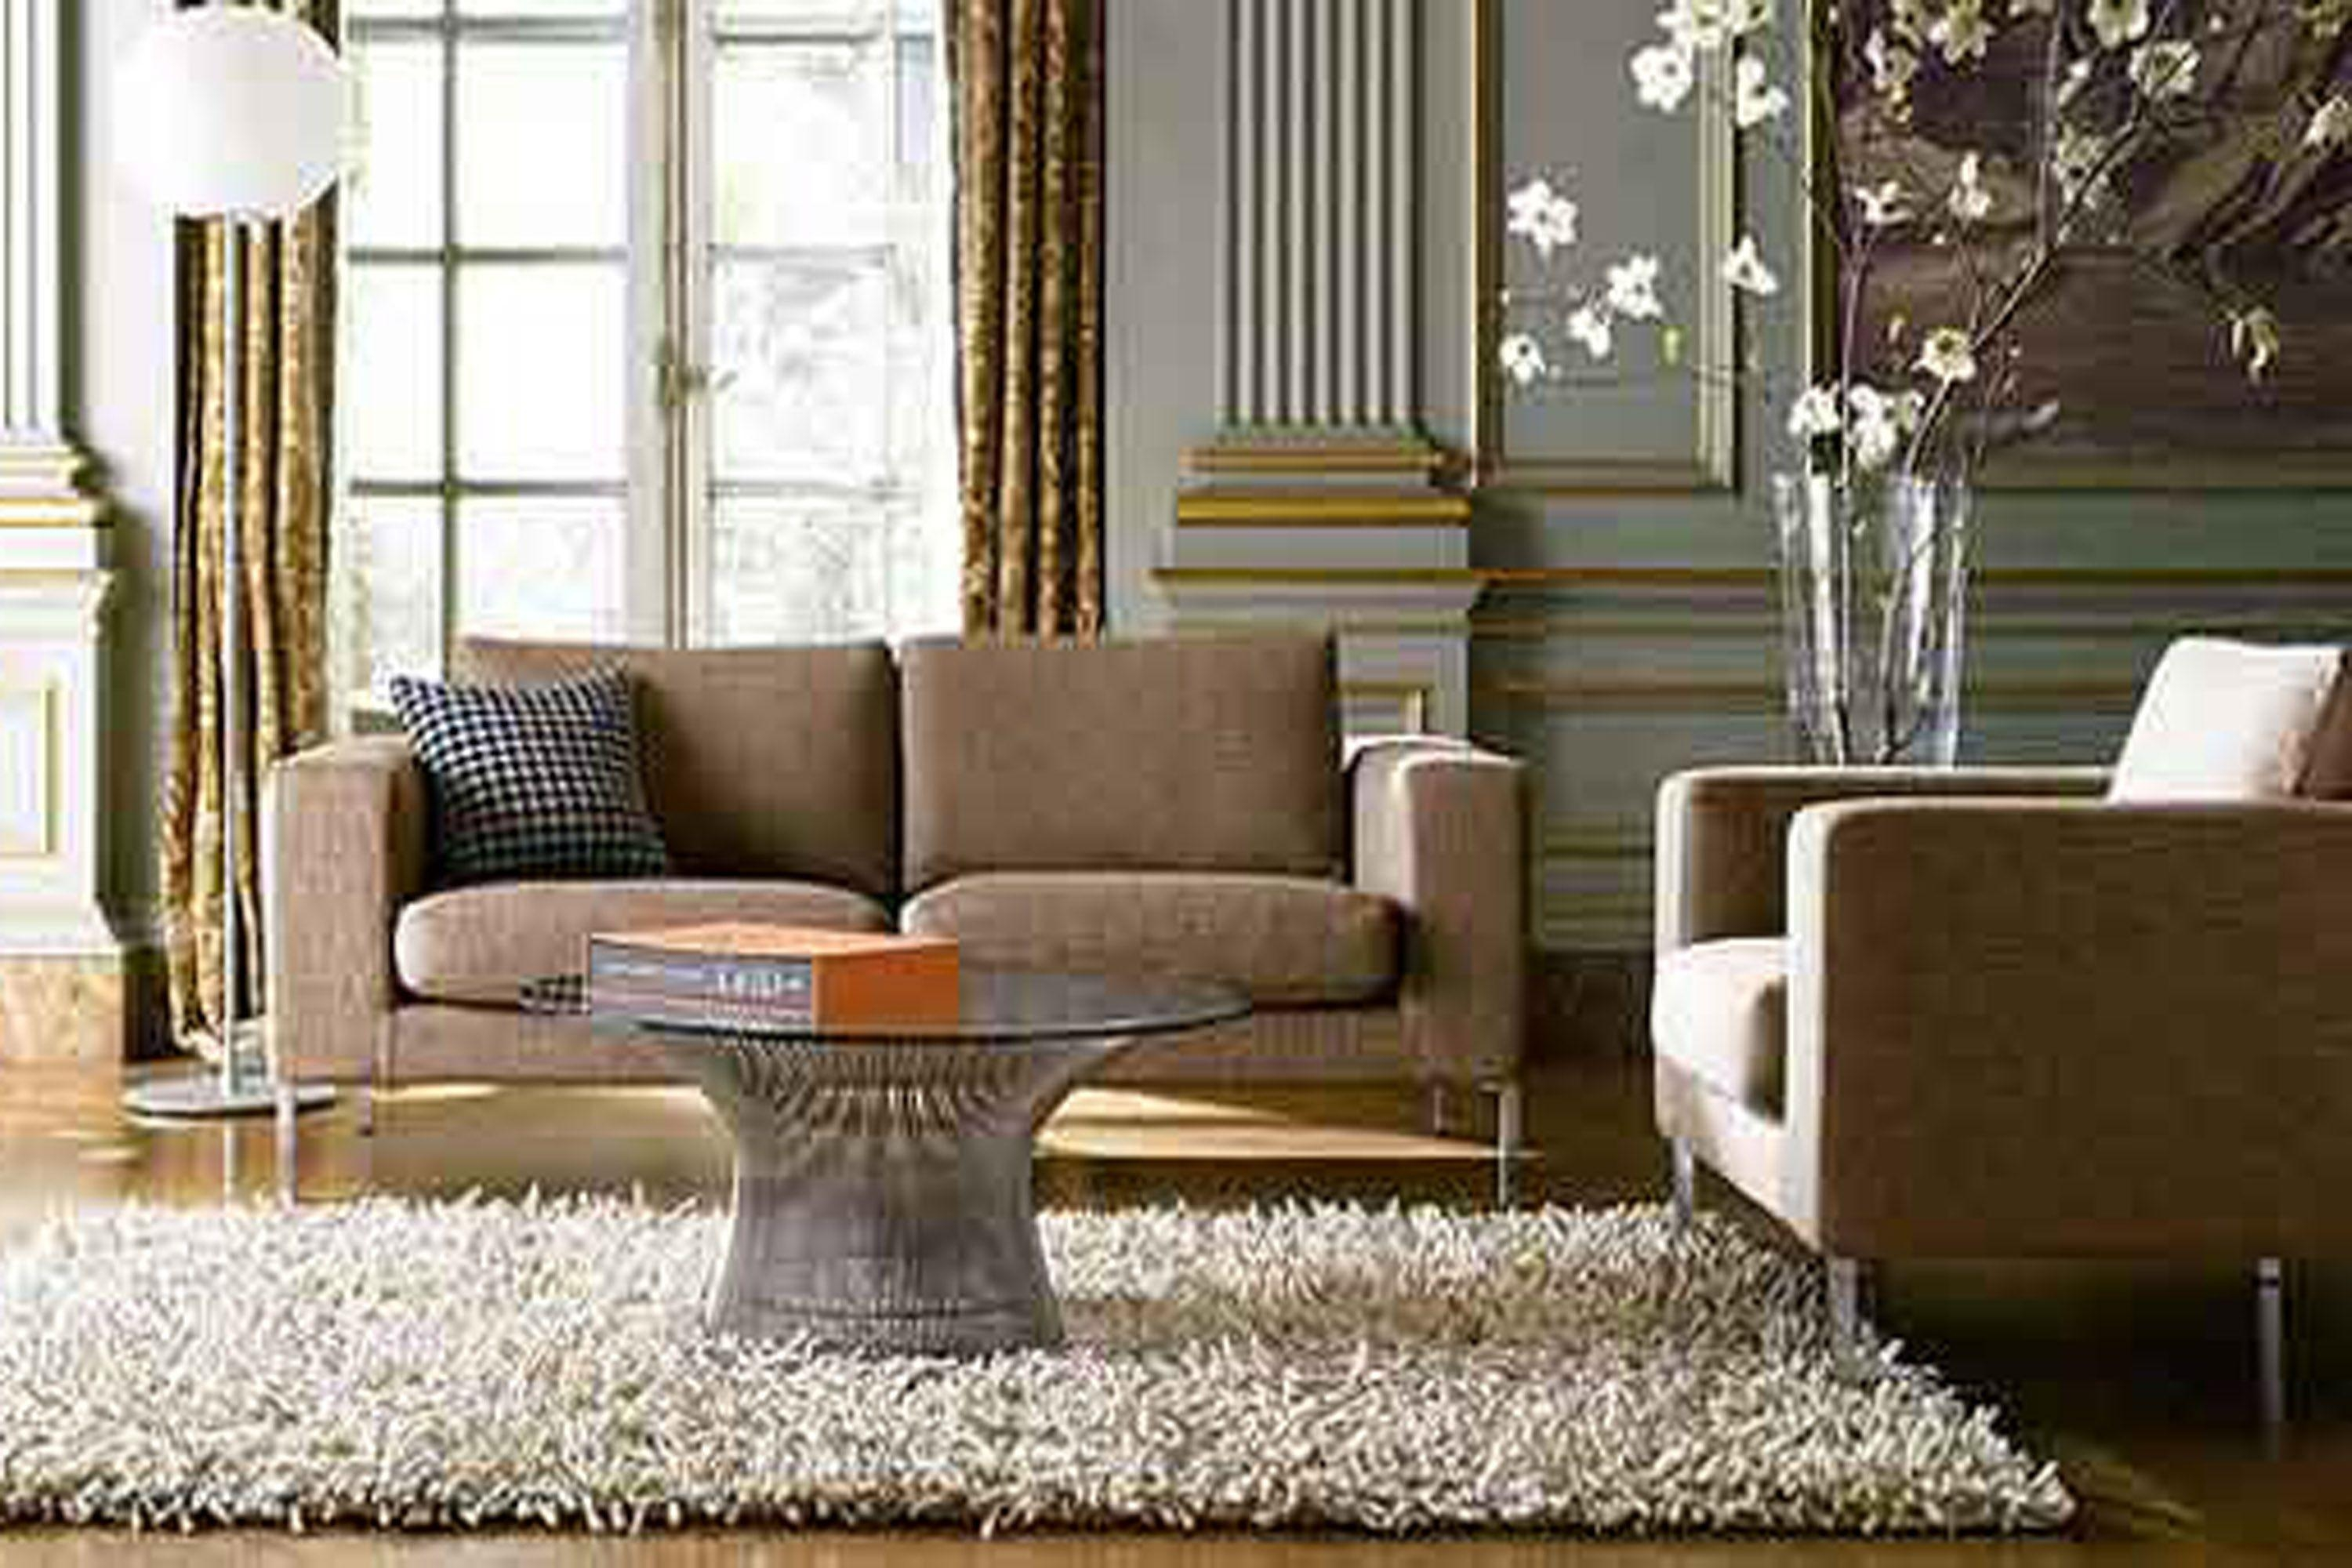 Wall Decor For Brown Furniture : Red brown living room ideas decor for